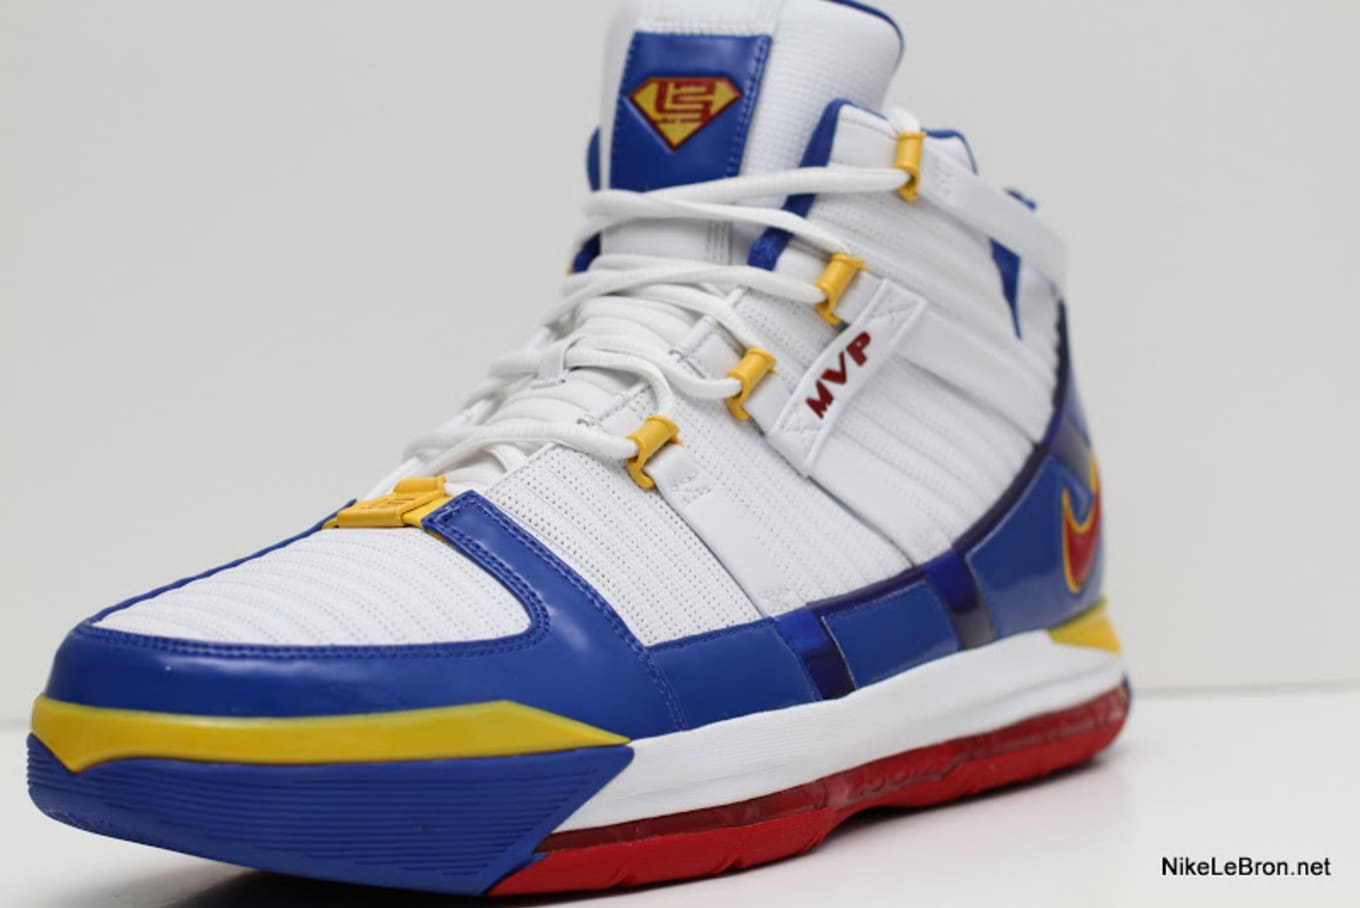 d1286e3f0f2 Nike LeBron Samples That Never Released